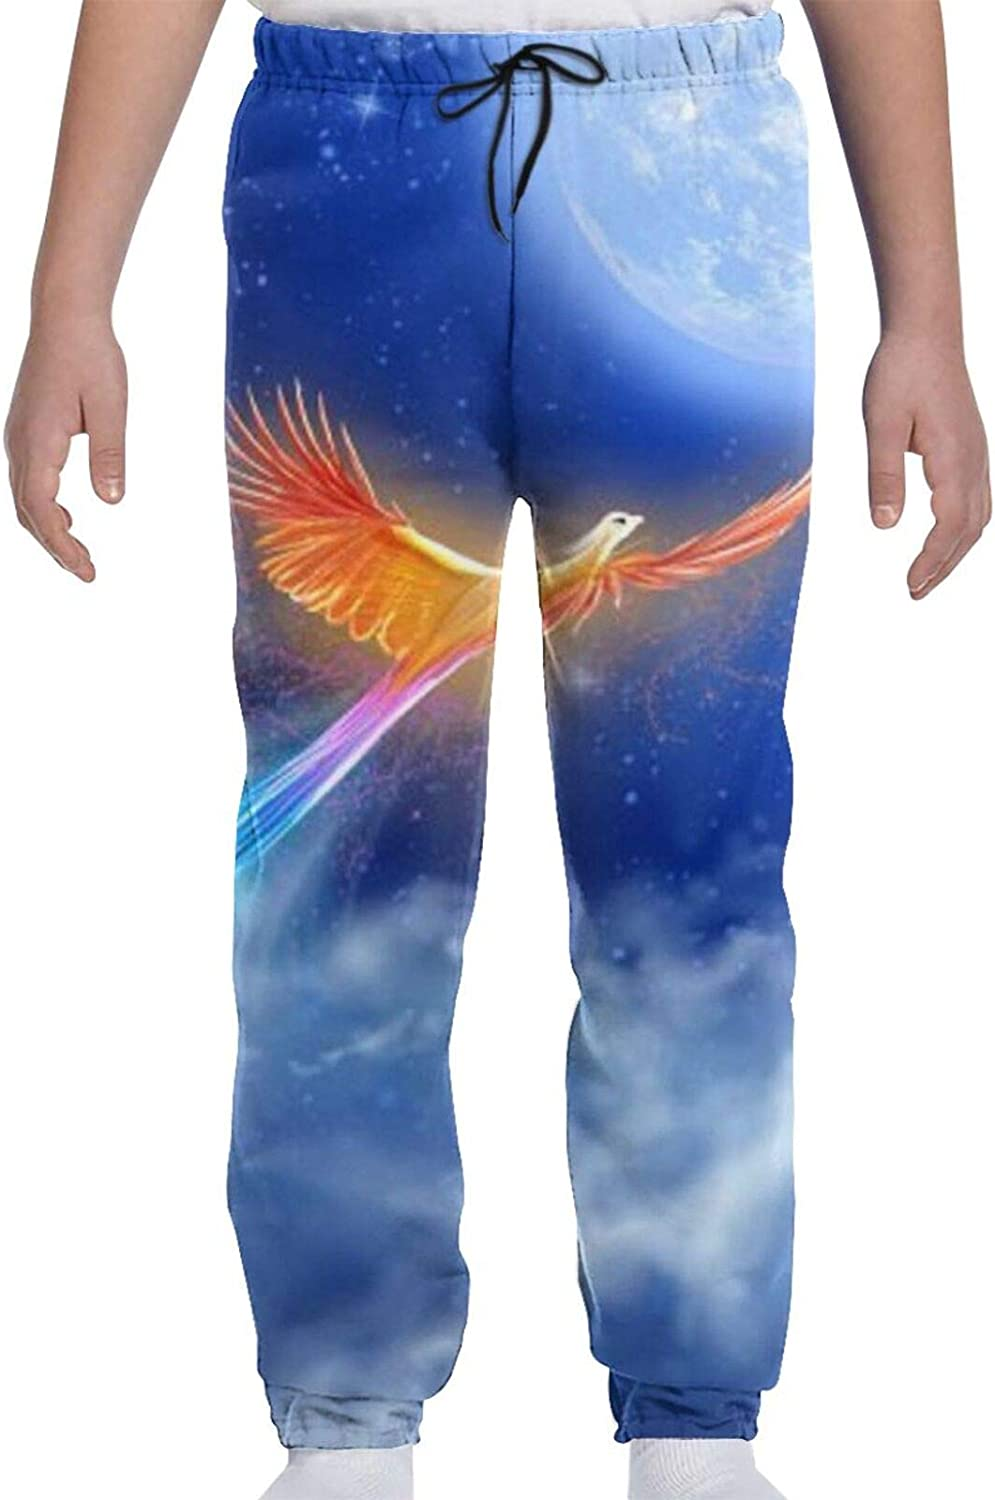 Oomato Moon Phoenix Youth Sweatpants Trousers Print 3D Teens A surprise price is realized Bo Award